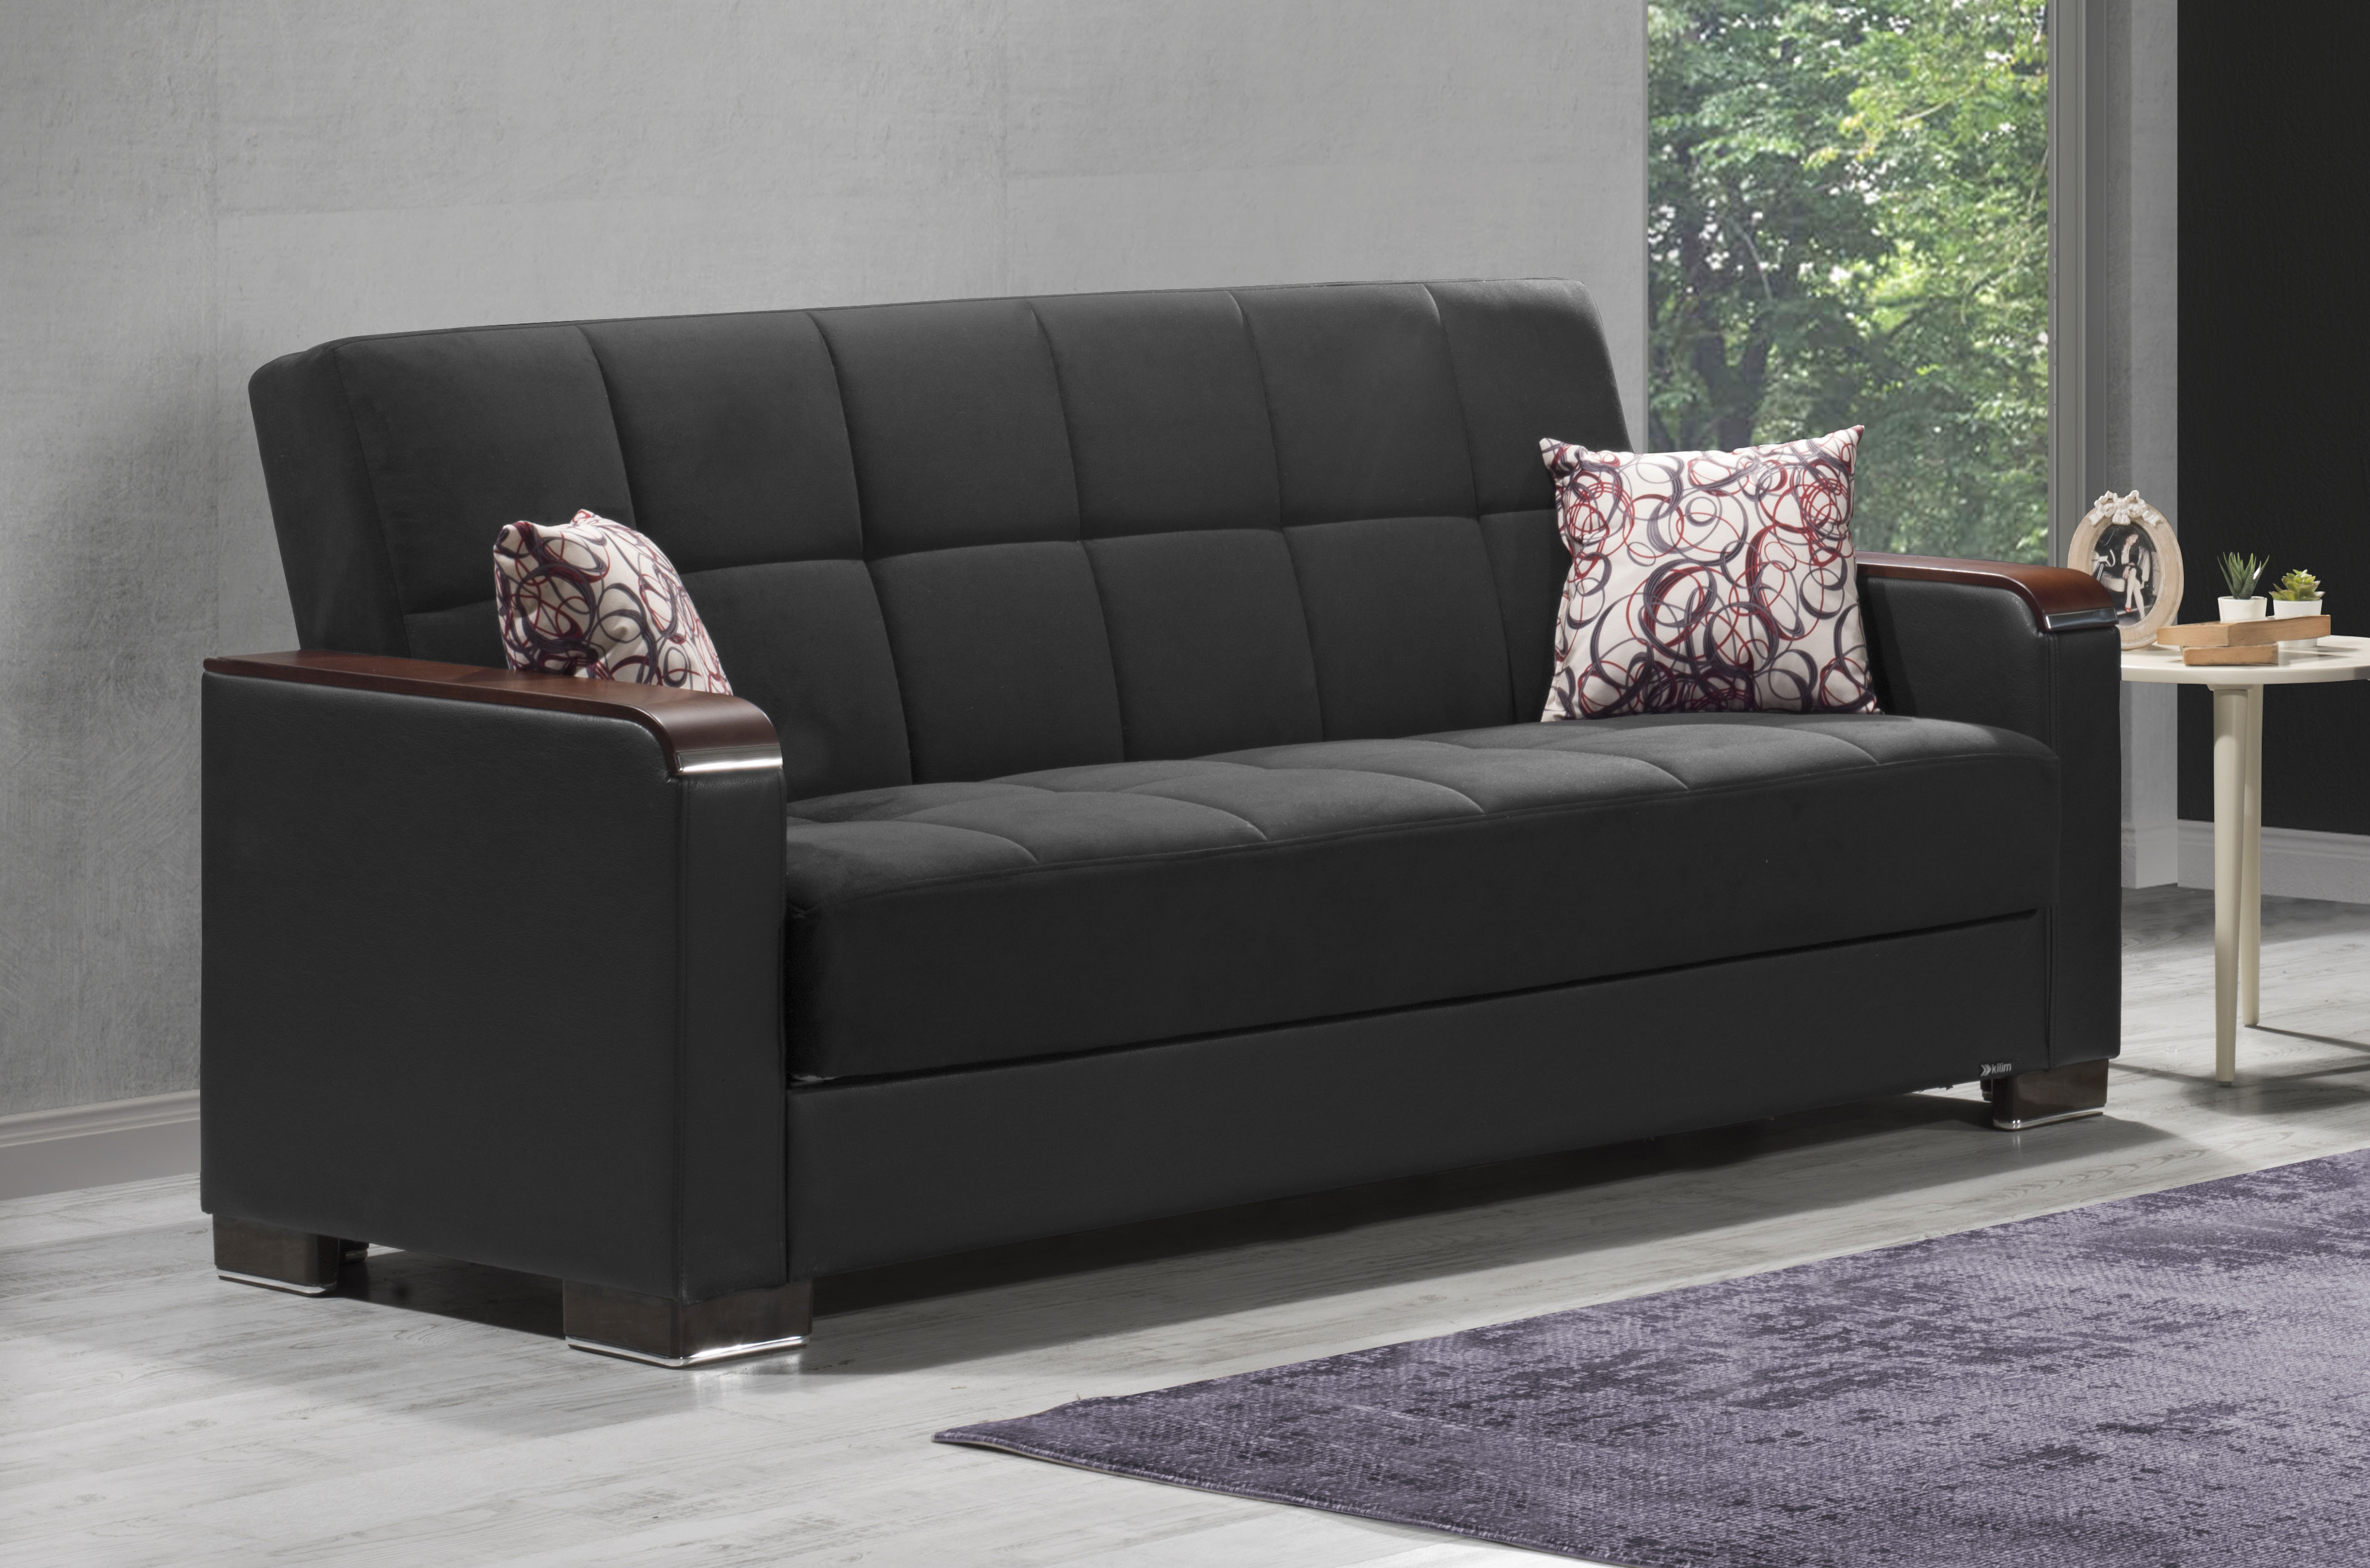 Armada X Black Sofa Bed By Casamode